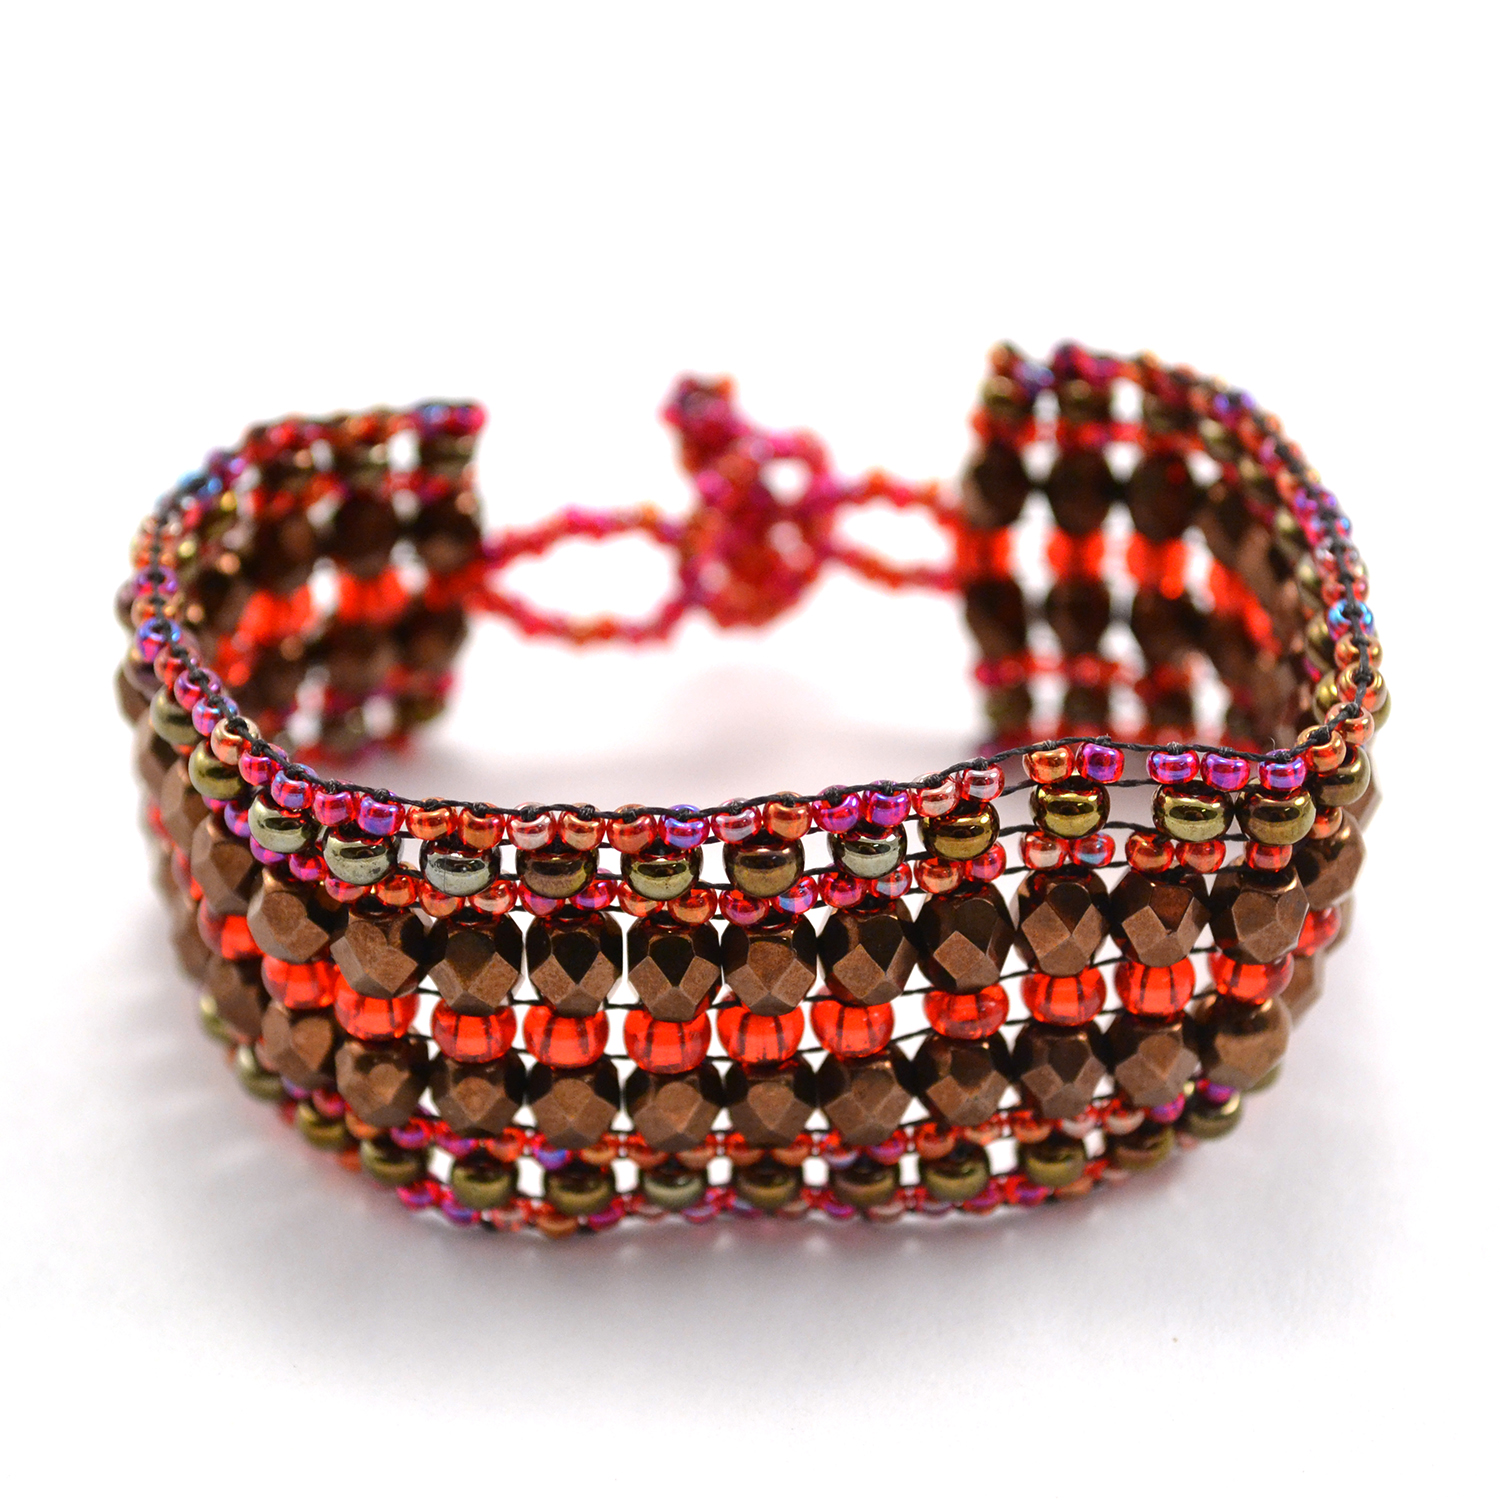 Stardust Bracelet in raspberry